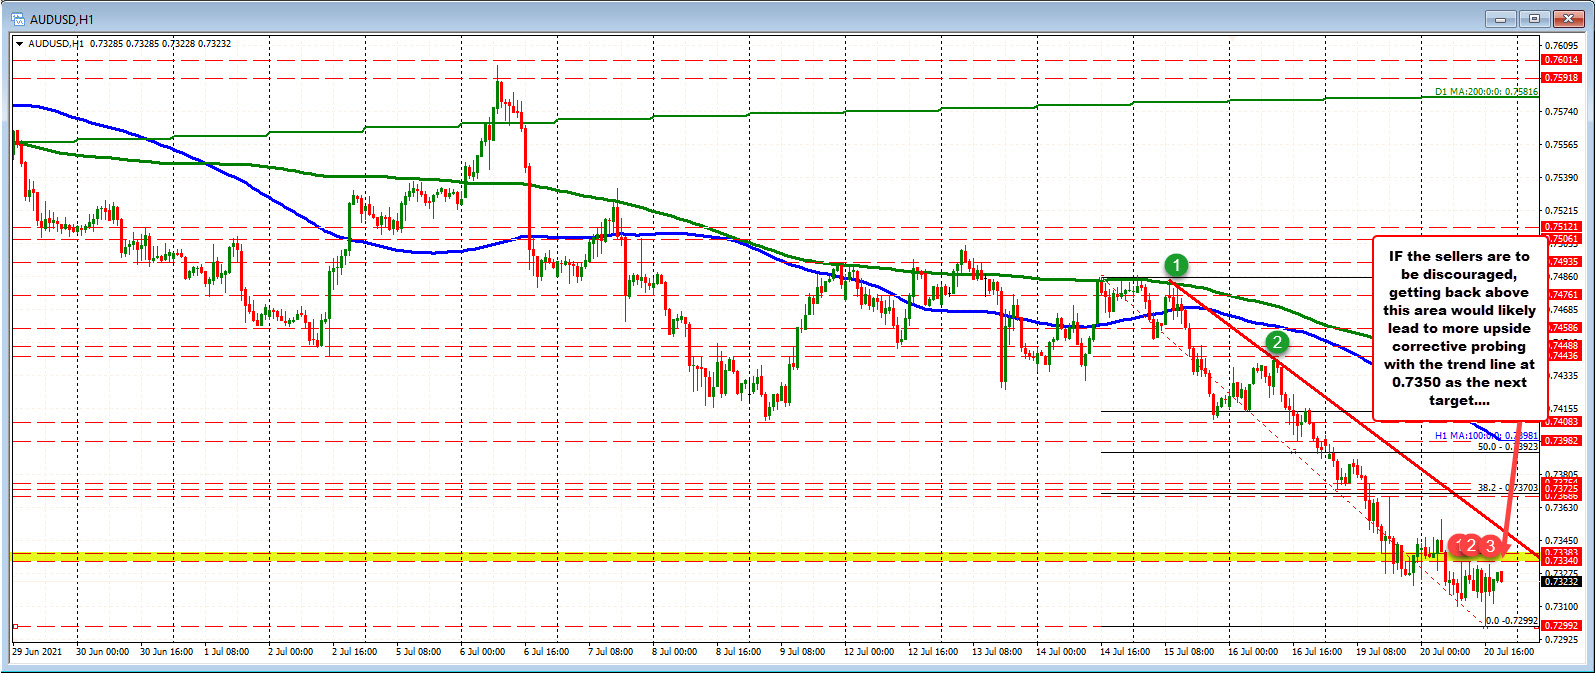 AUDUSD on the hourly chart remains below the 0.7338 level